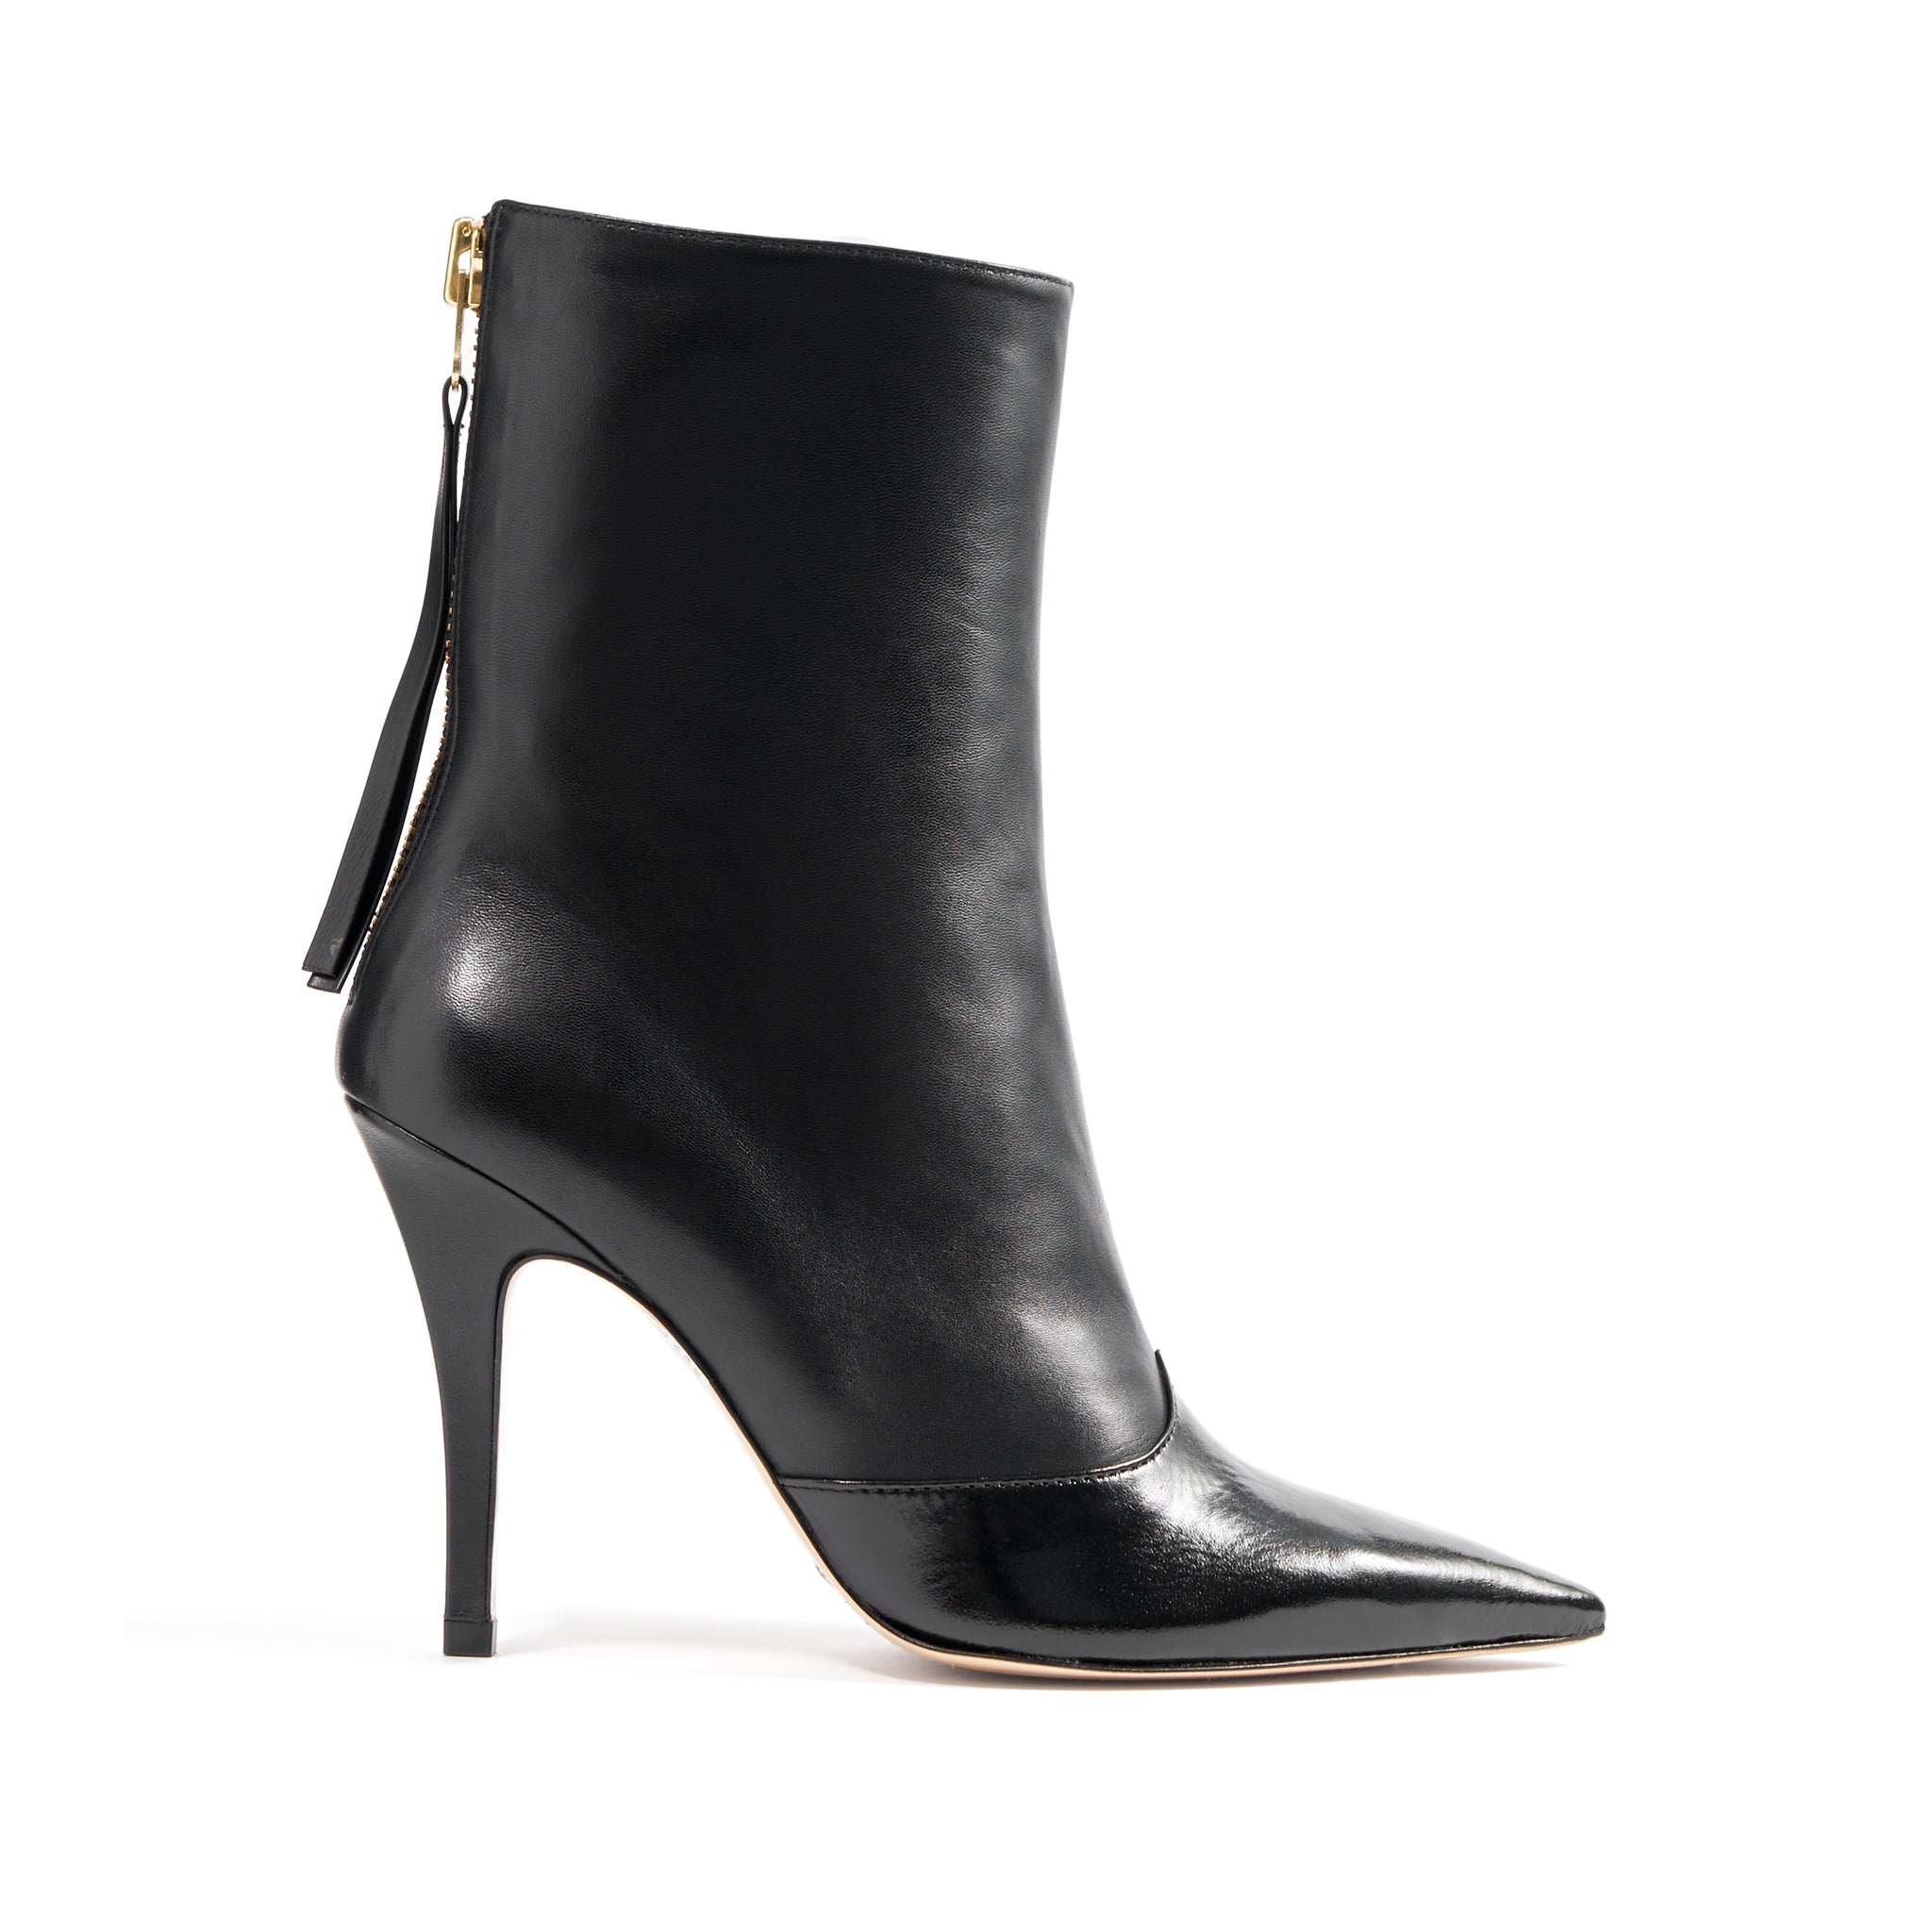 Carlee Booties Black Patent Leather